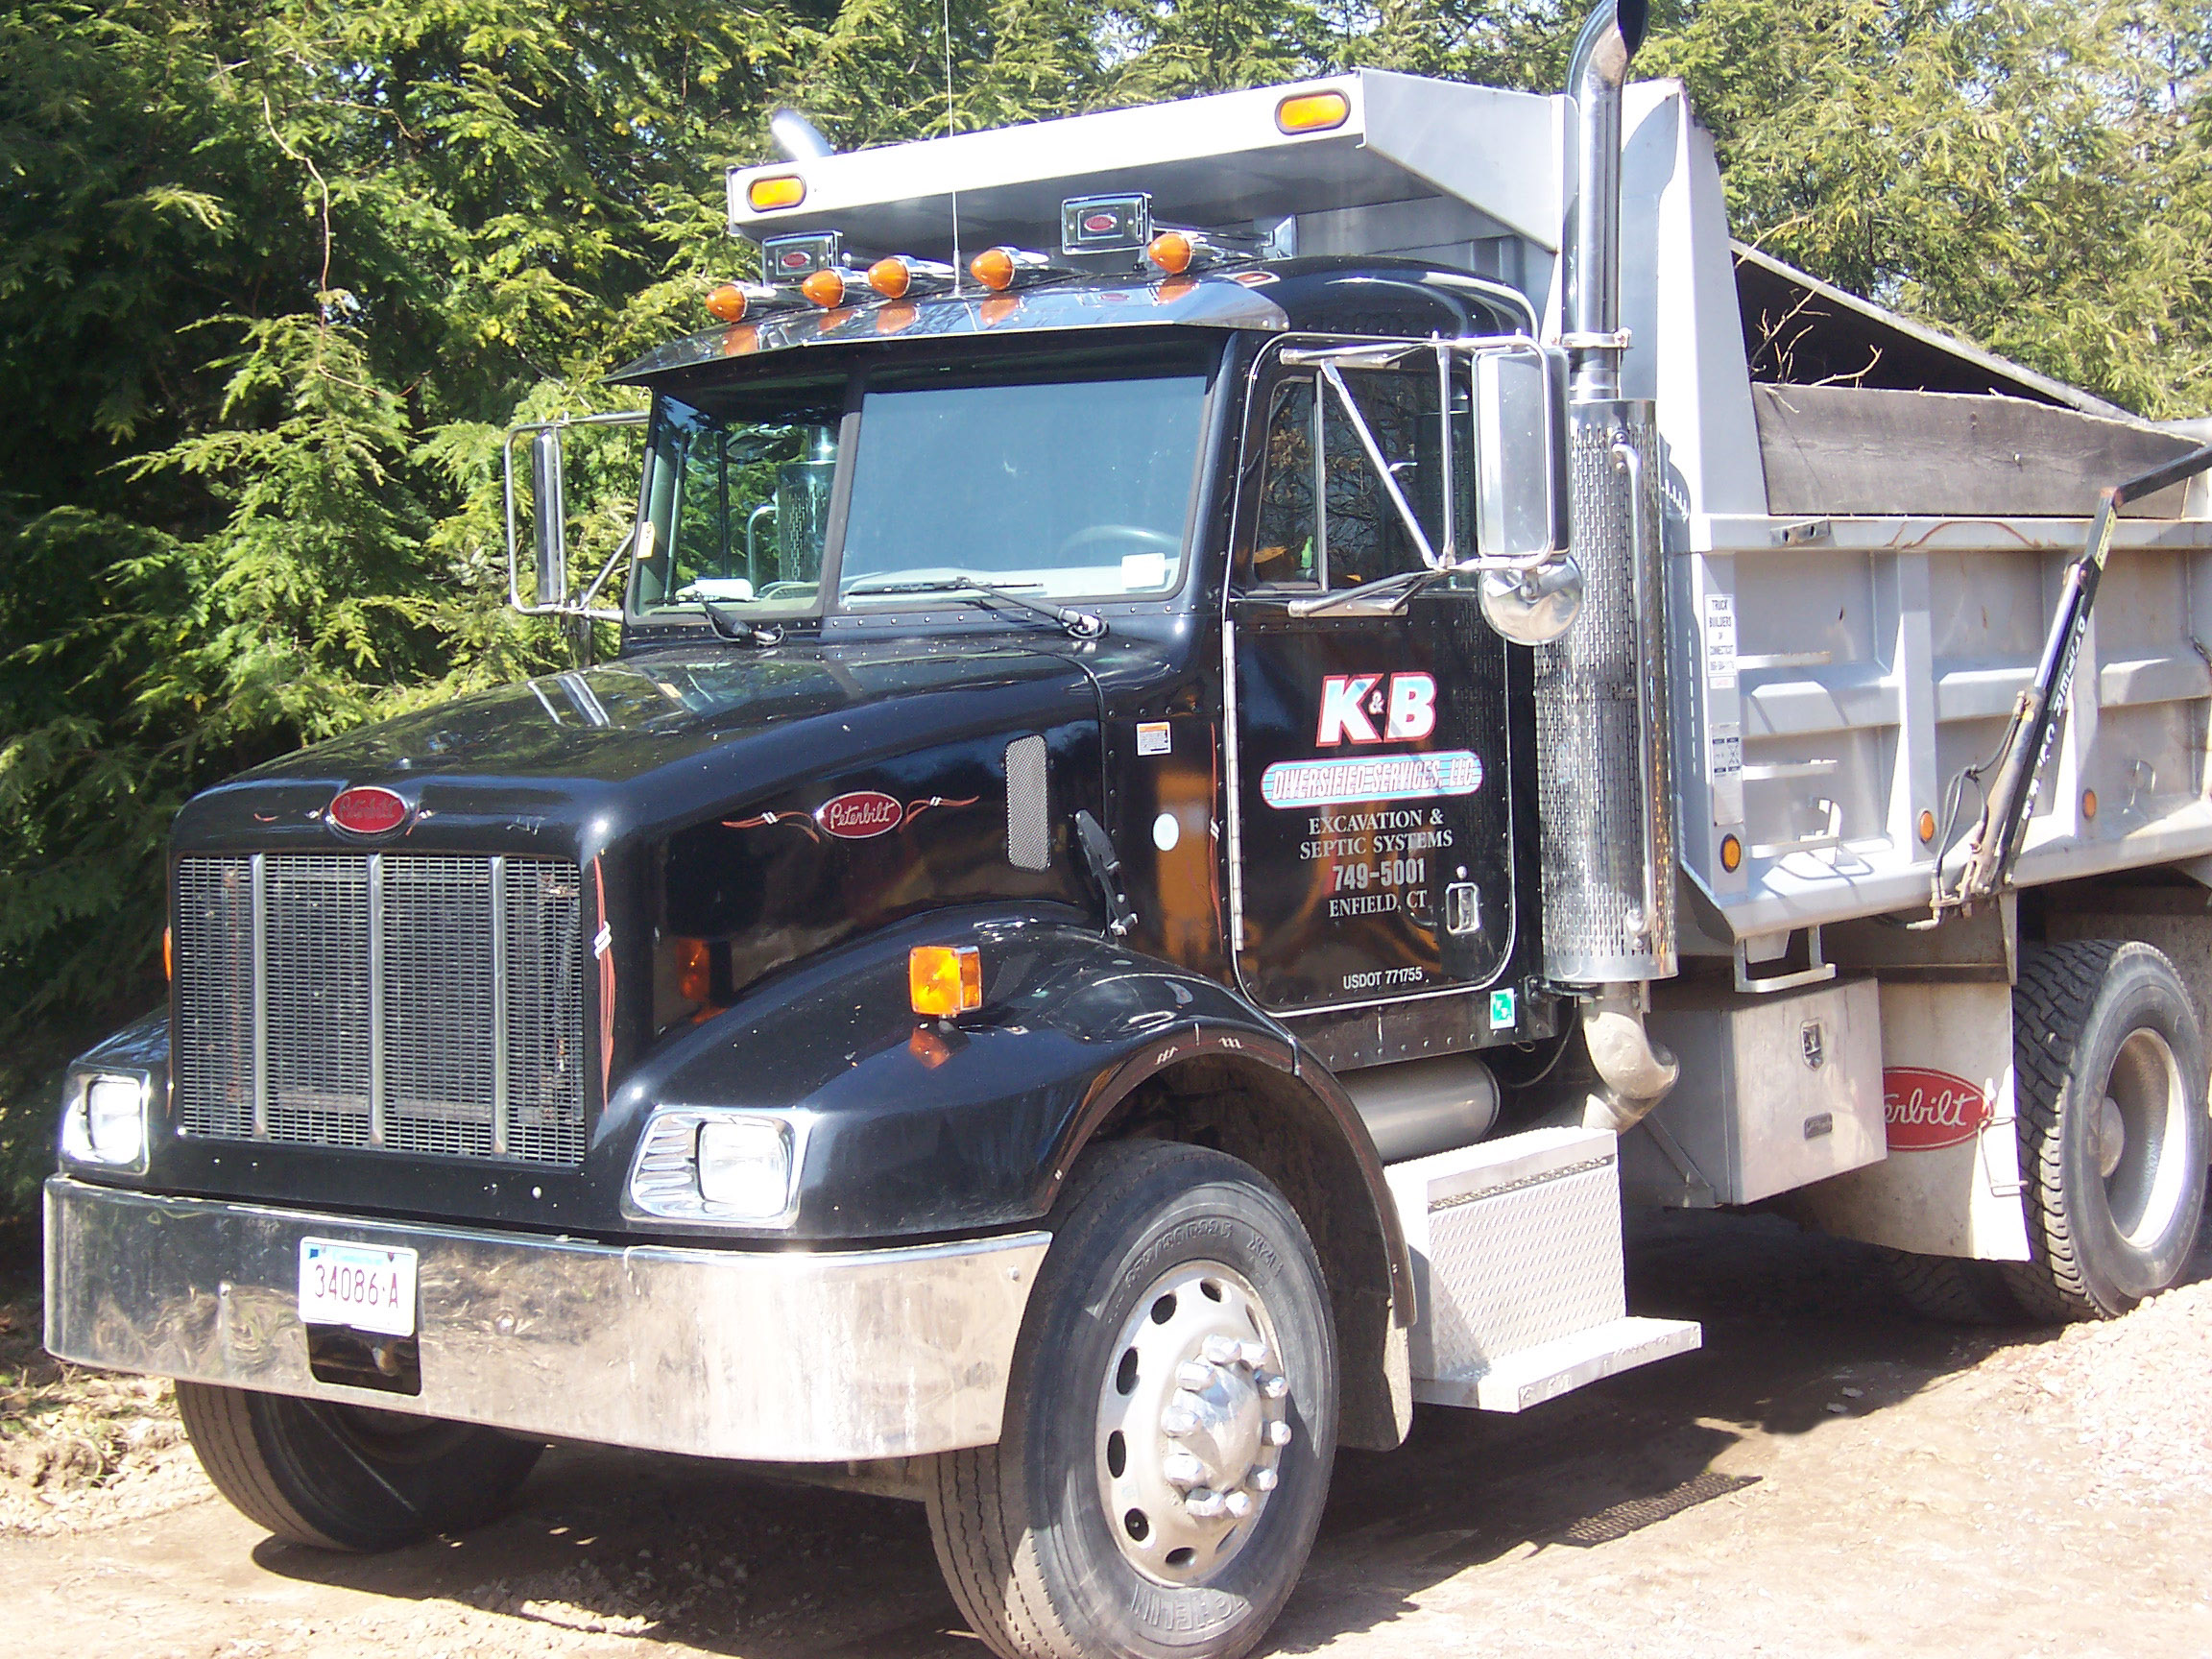 K b diversified services excavation septic enfield ct 860 749 5001